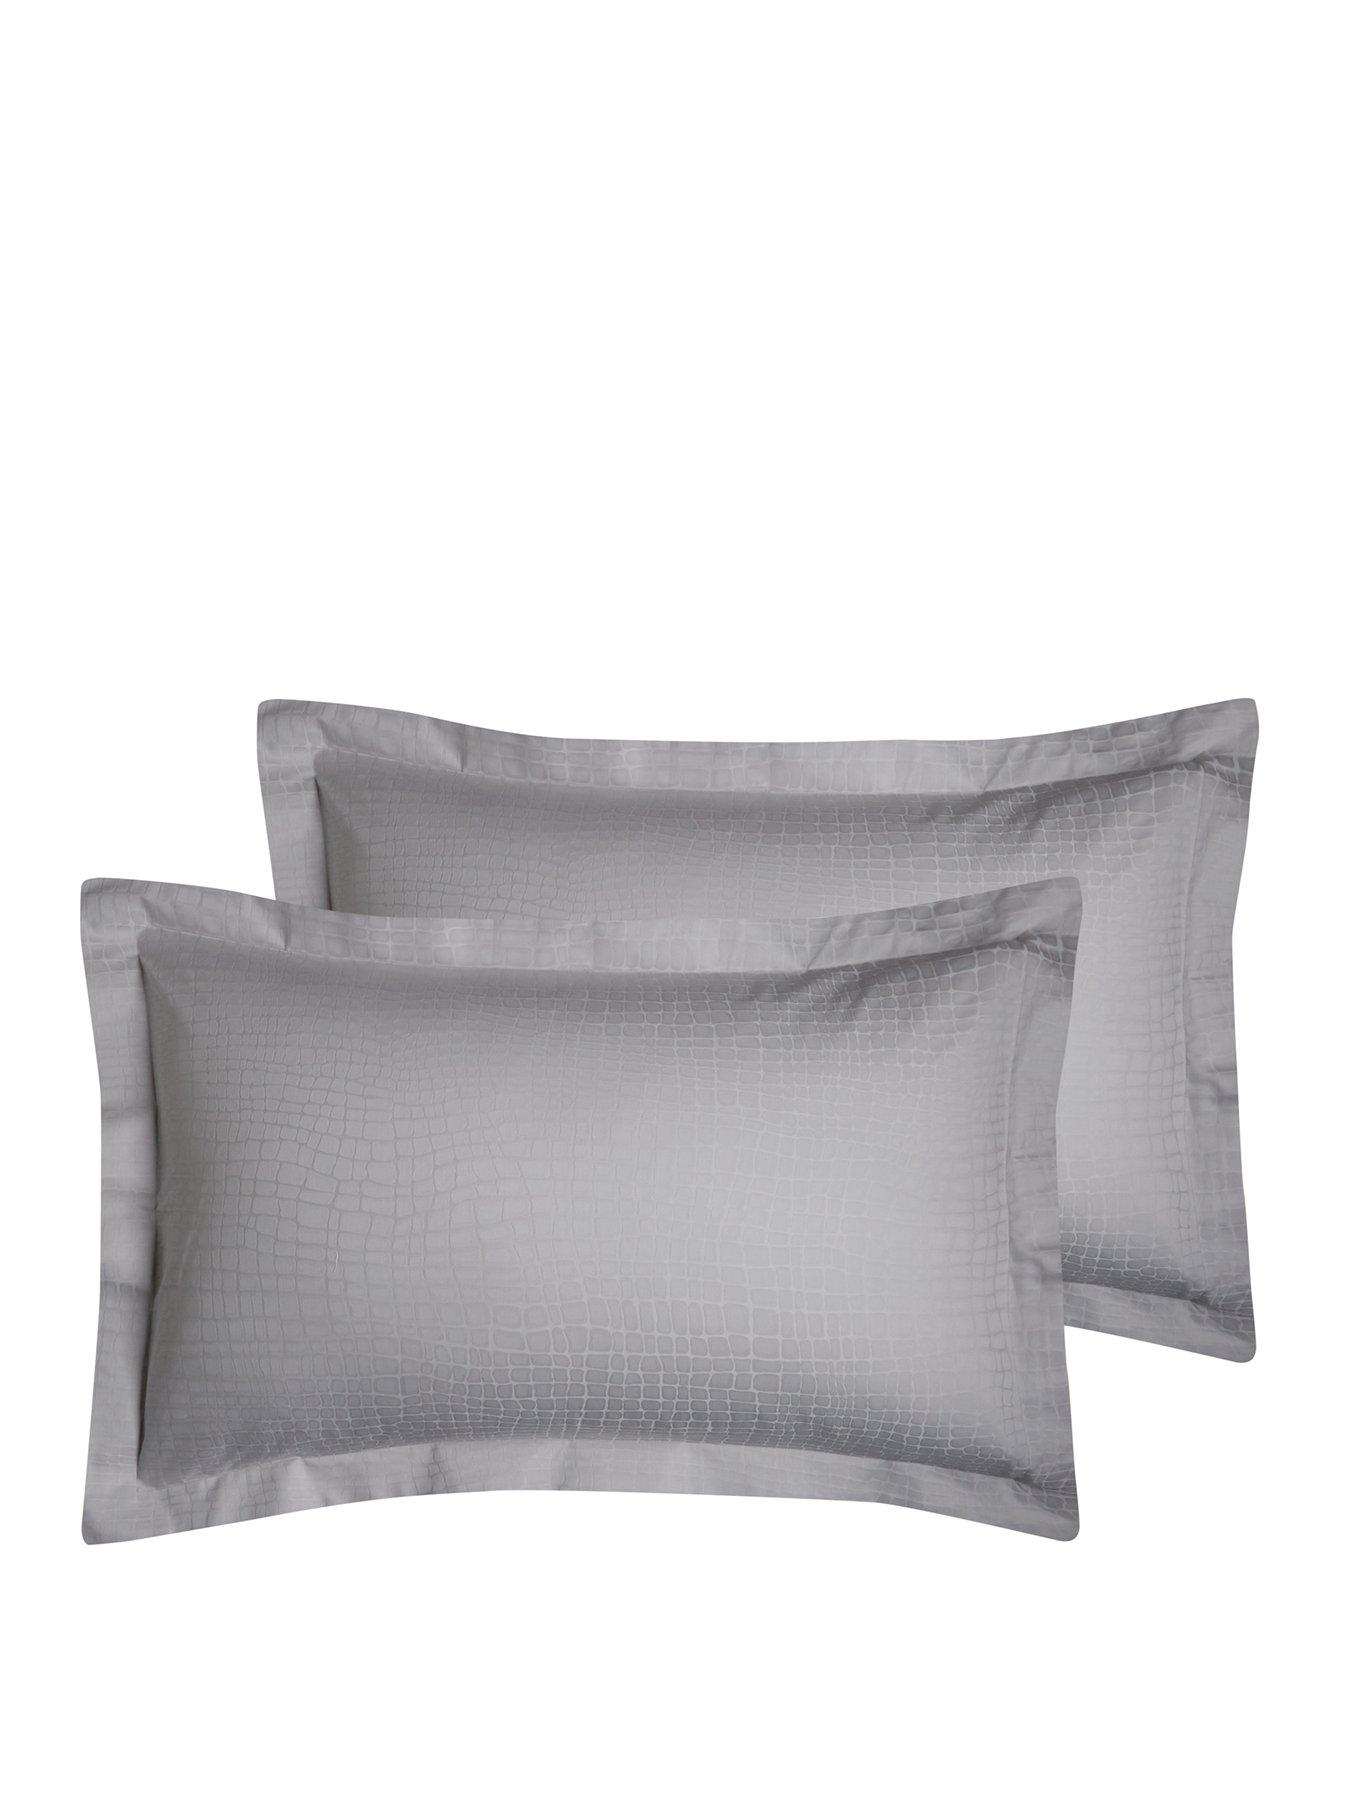 Hotel Collection Snakeskin 300 Thread Count Oxford Pillowcases (Pair)